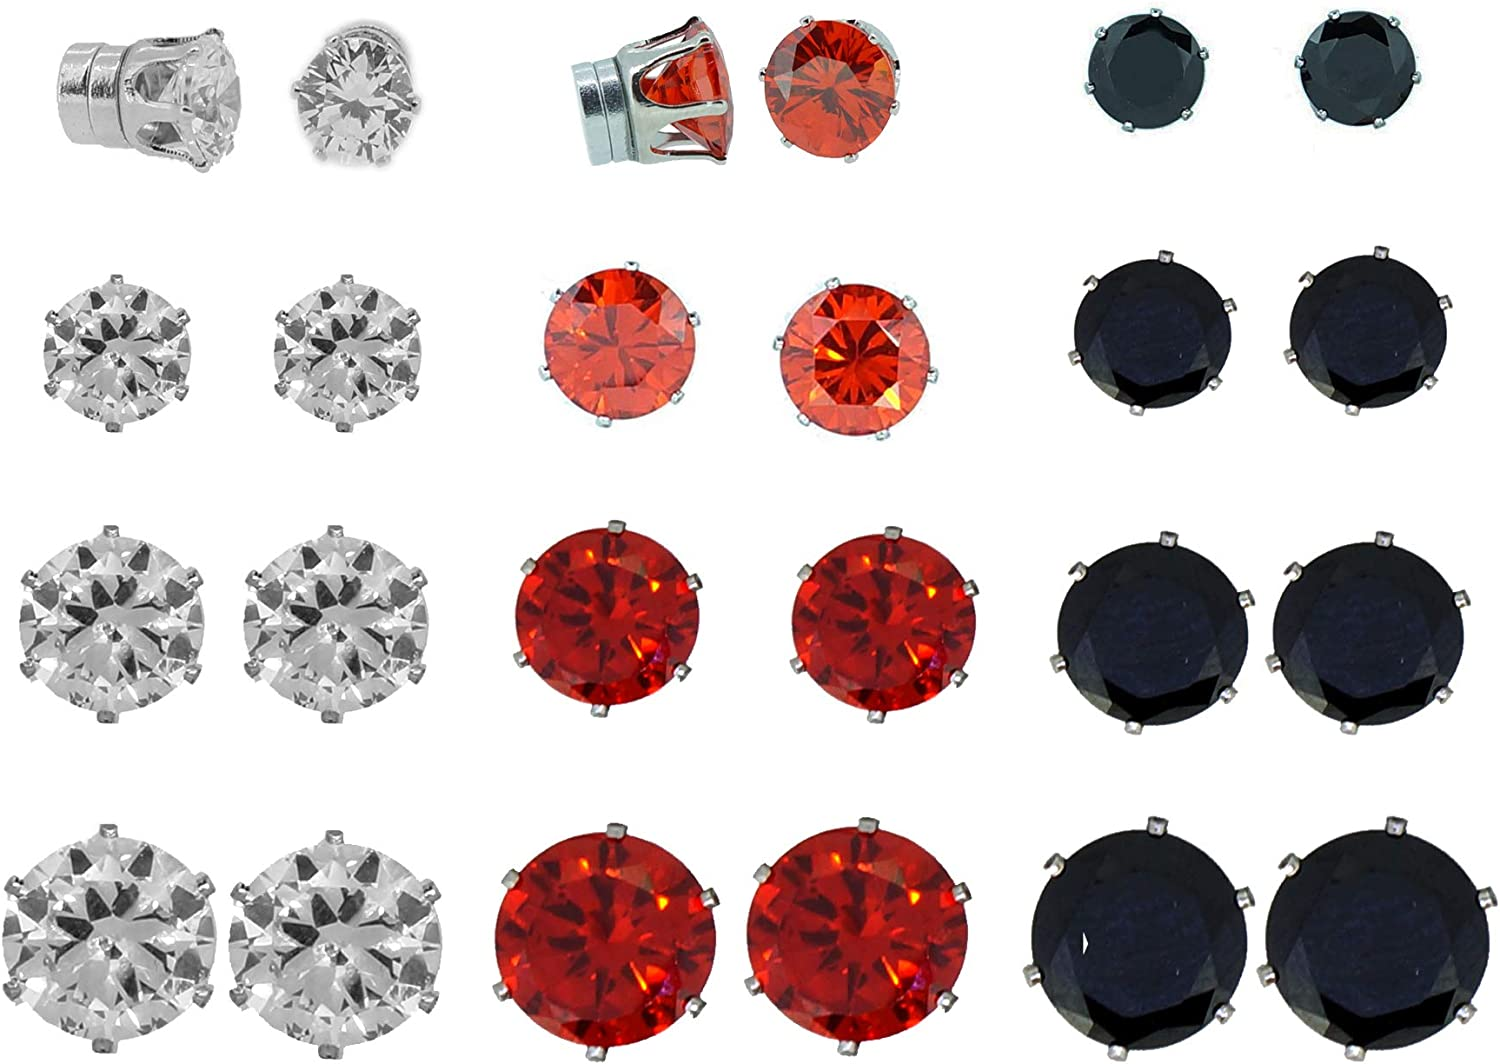 Mix Color Cubic Zirconia CZ Crystal Magnetic Clip On Stud Earrings, Pack of 12 Pairs, 3 Color Set for Teen Girls Women